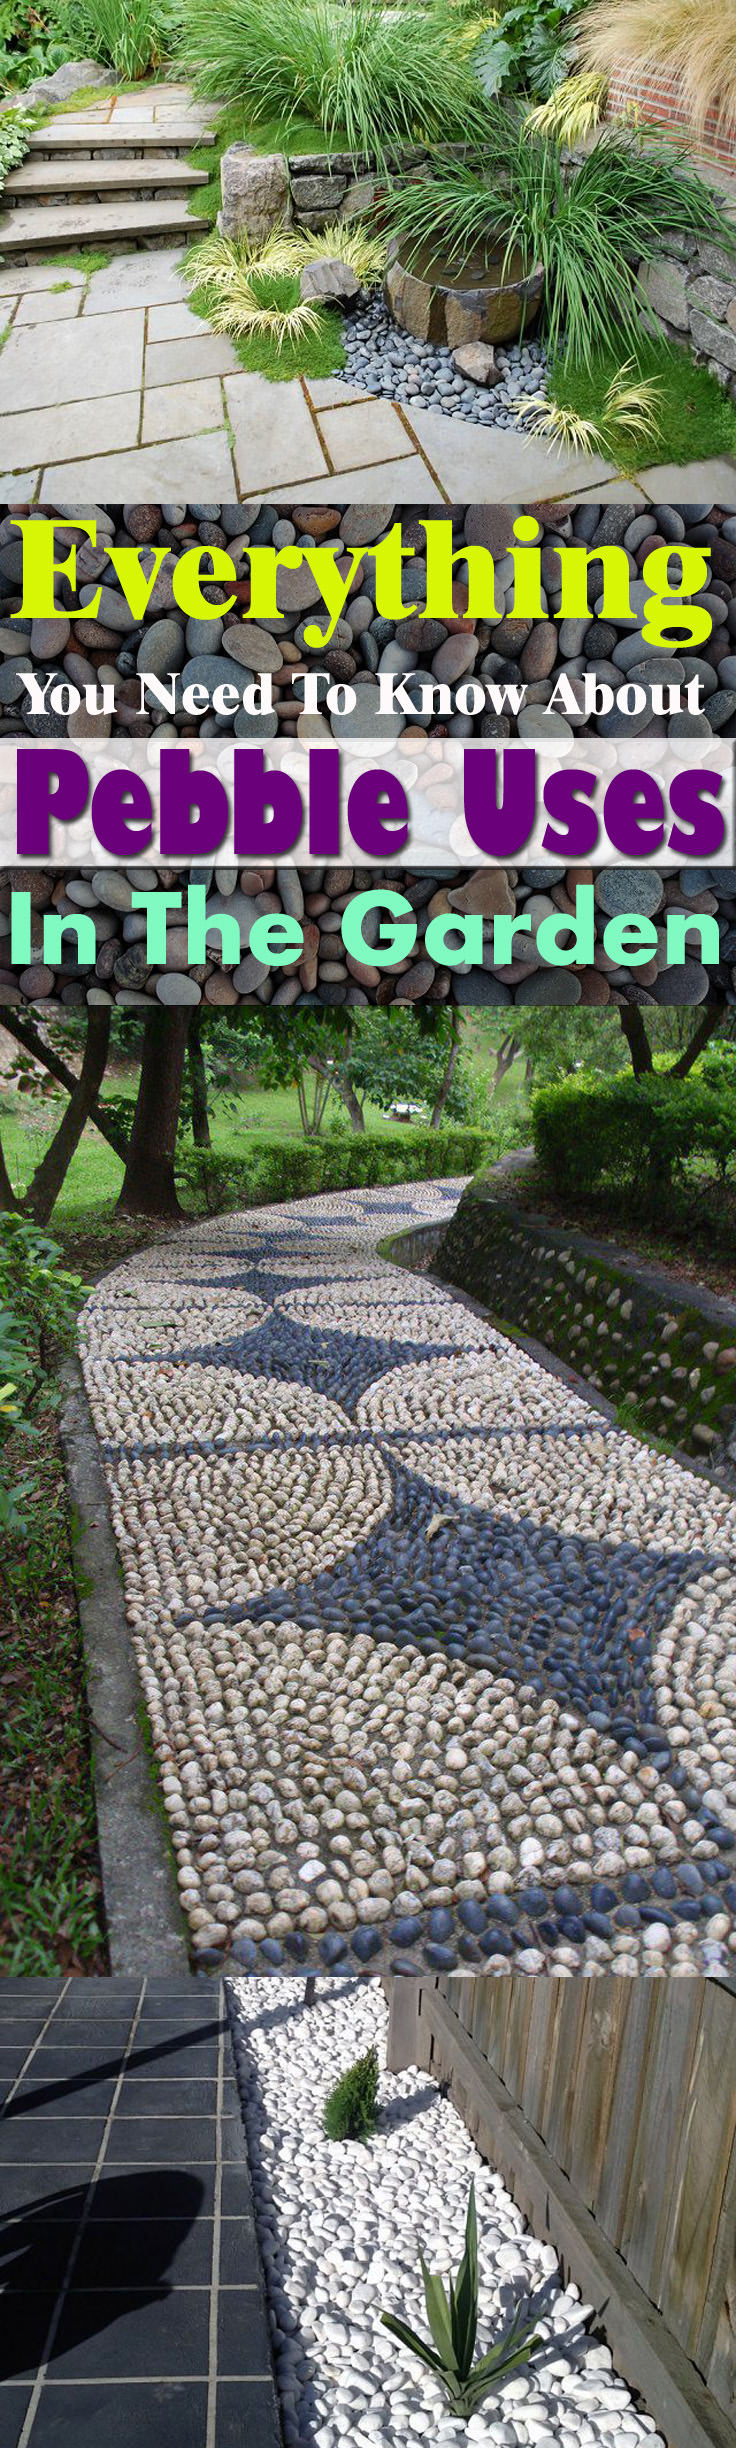 Pebble Garden Everything You Need To Know About Using Pebbles In The Garden